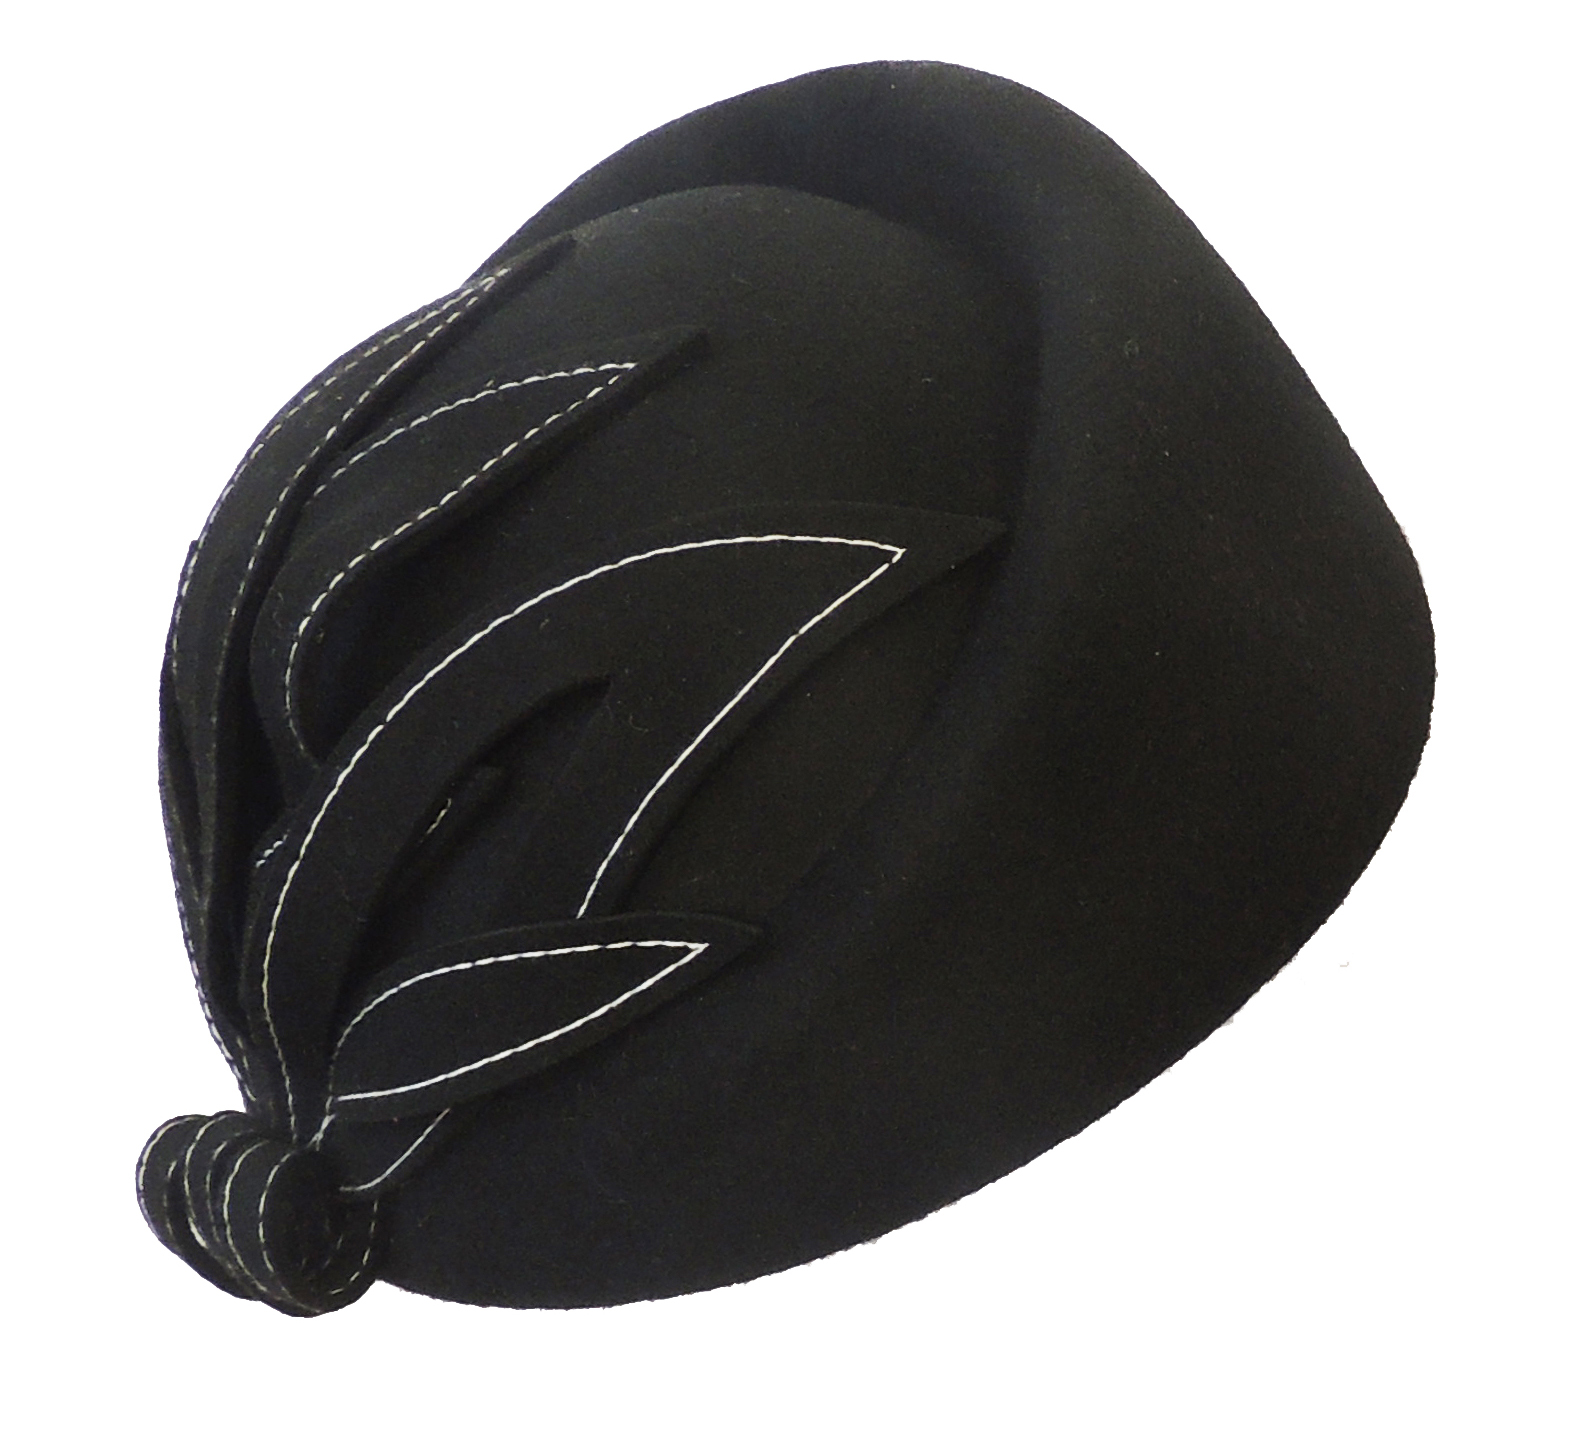 1940s Style Hats    New Vintage 1940s 50s style Elegant Felt Appliqué Cloche Hat $29.99 AT vintagedancer.com